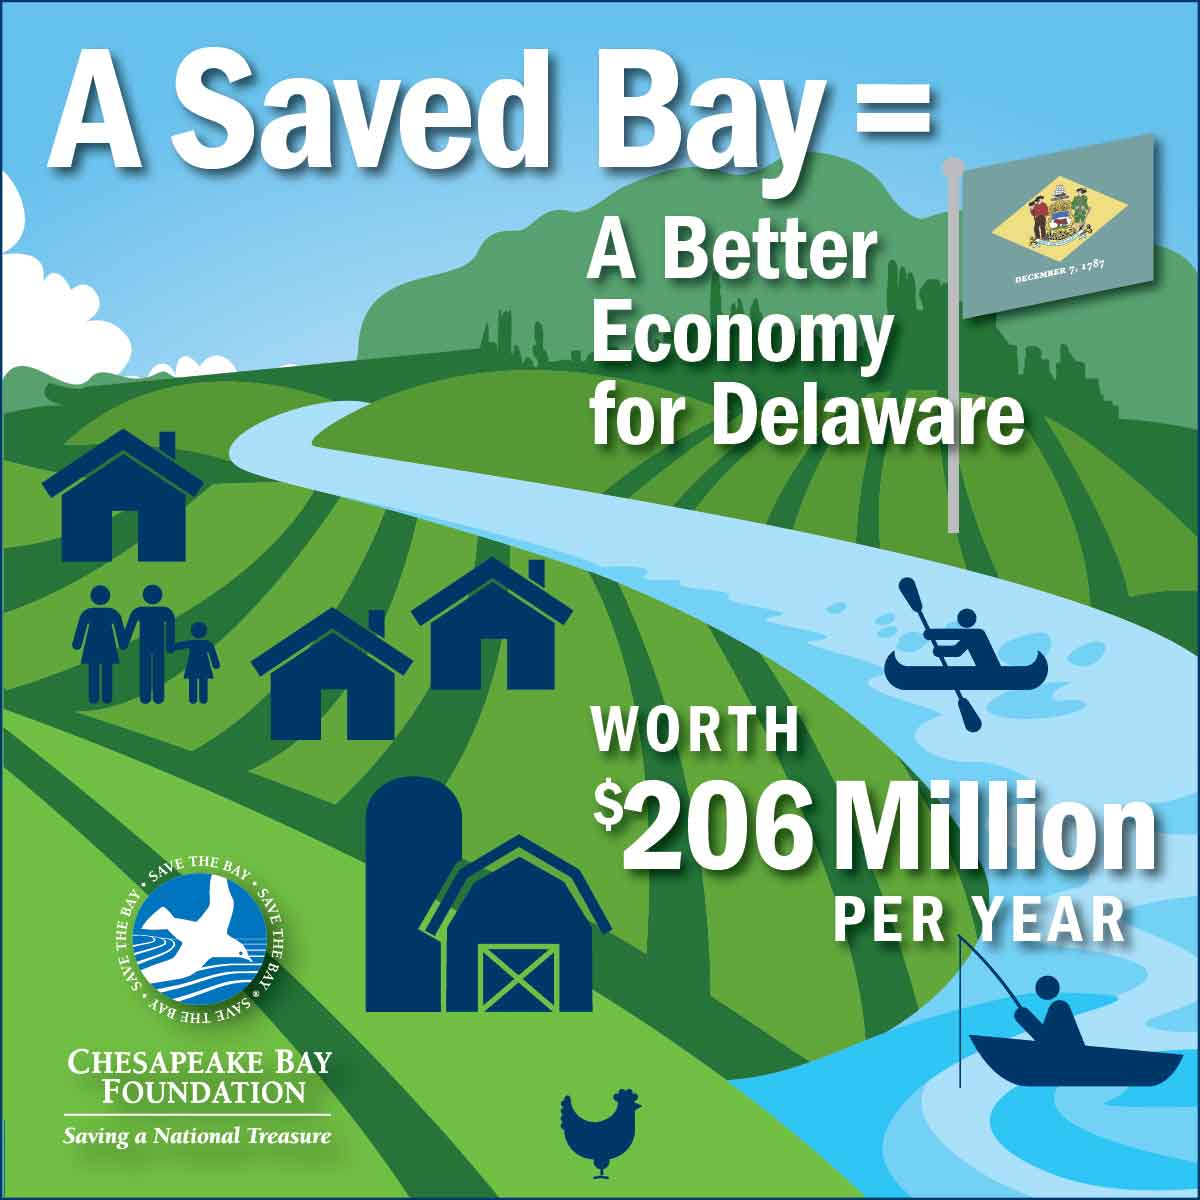 A Saved Bay = A Better Economy for Delaware worth $206 Million per year